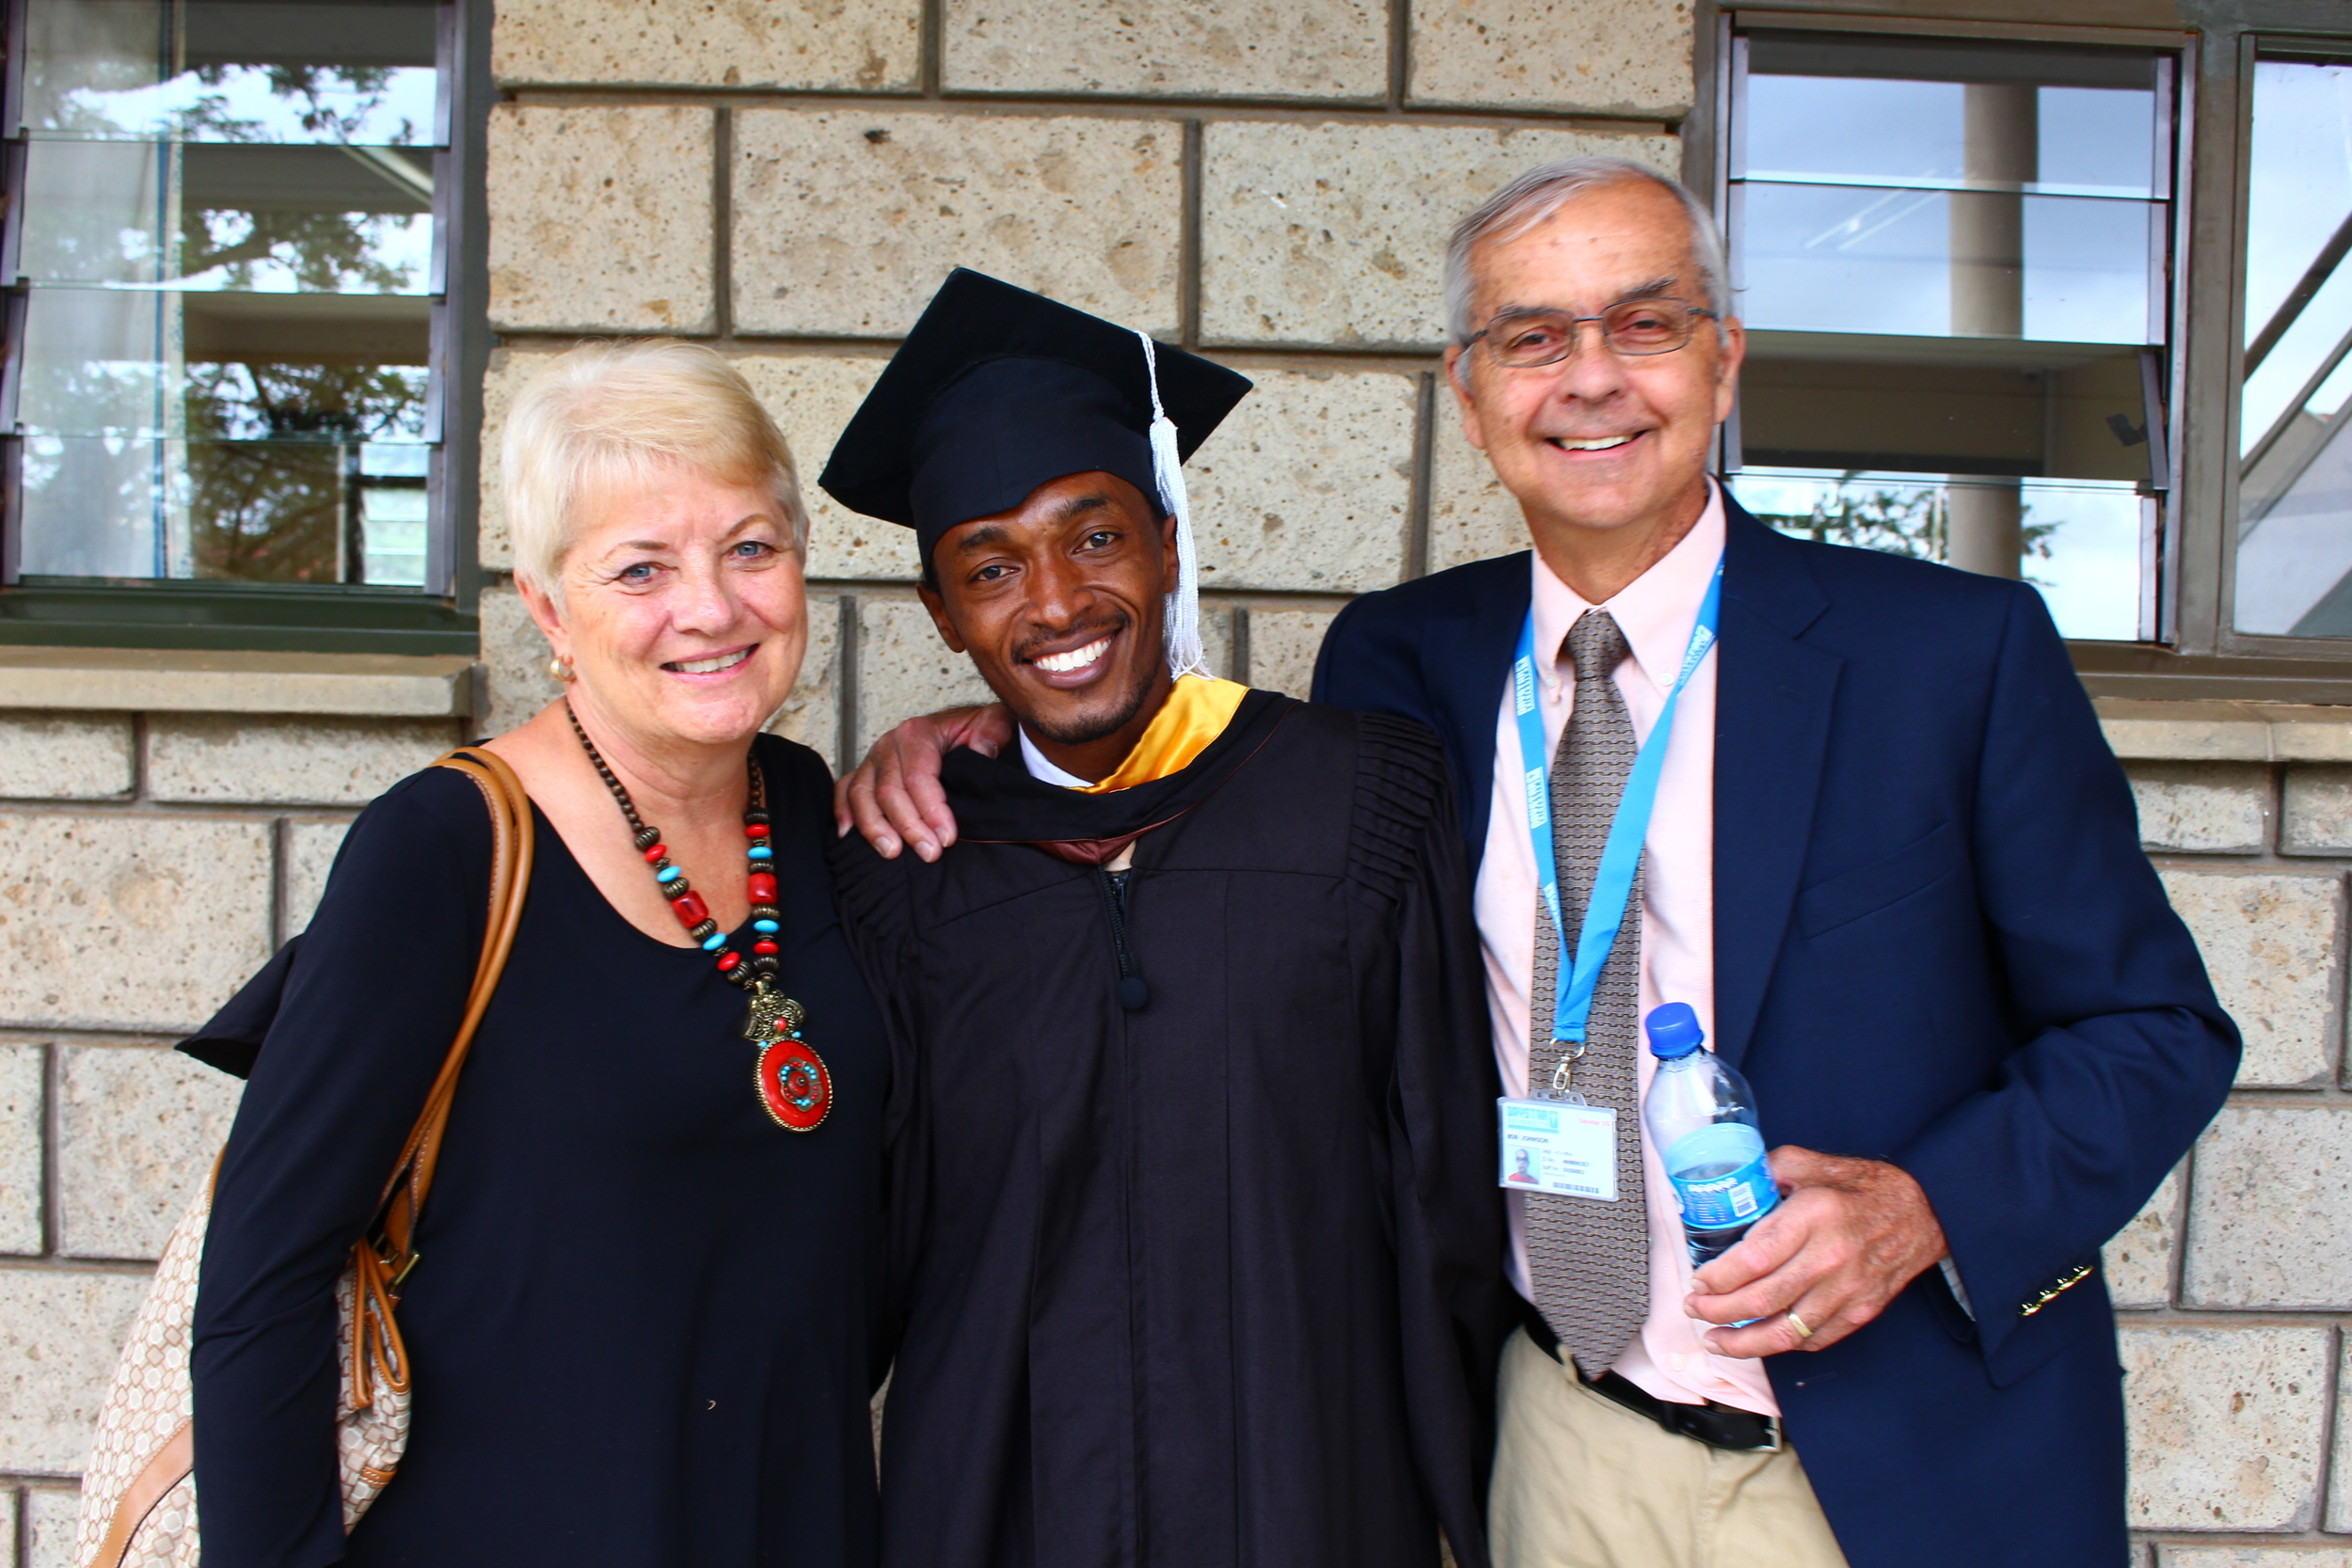 Kathy and her husband, Bob, with their good friend, and Afrizo member, Peter.